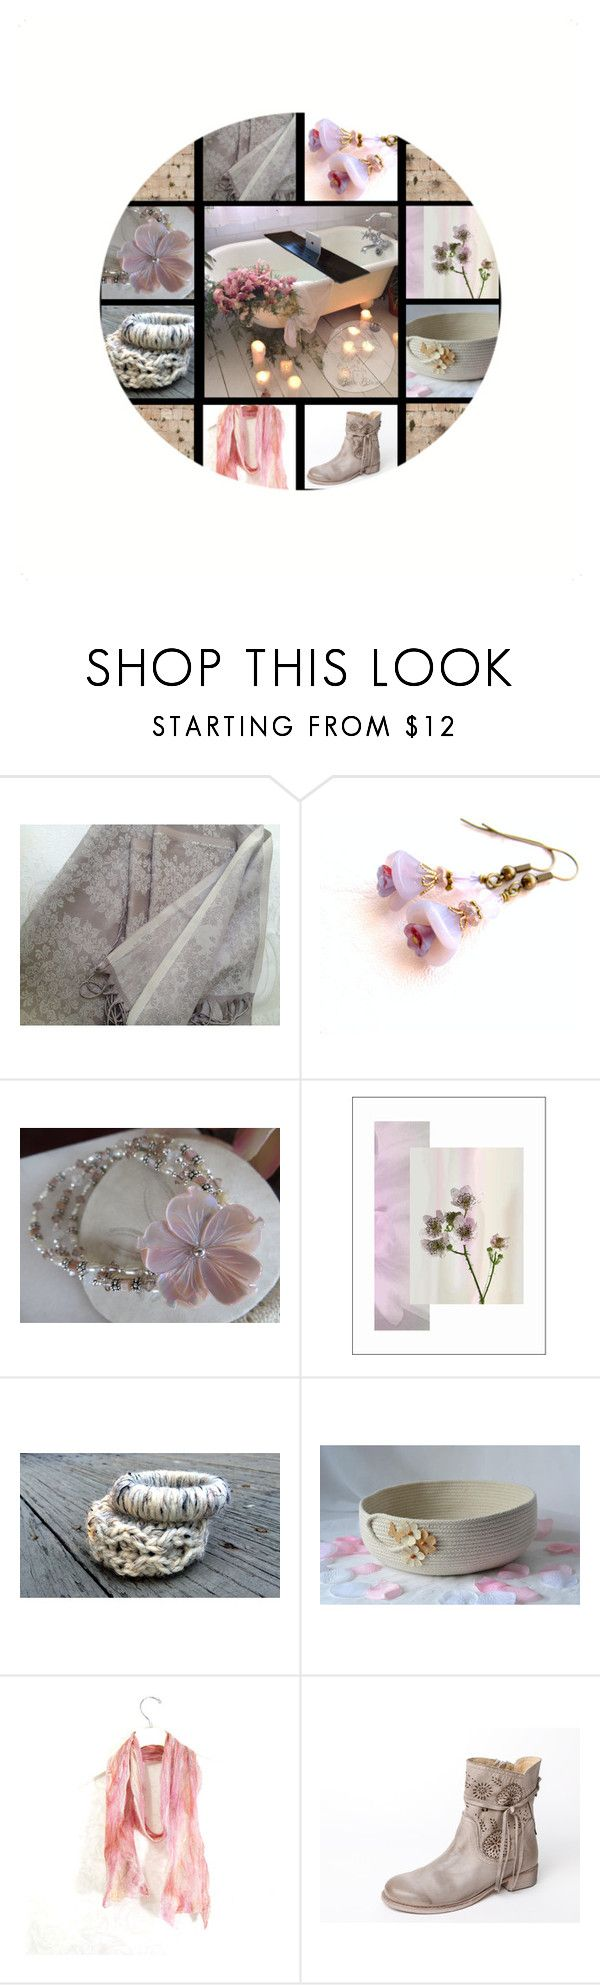 """Sweets for the Sweet"" by fibernique ❤ liked on Polyvore featuring Cadeau"